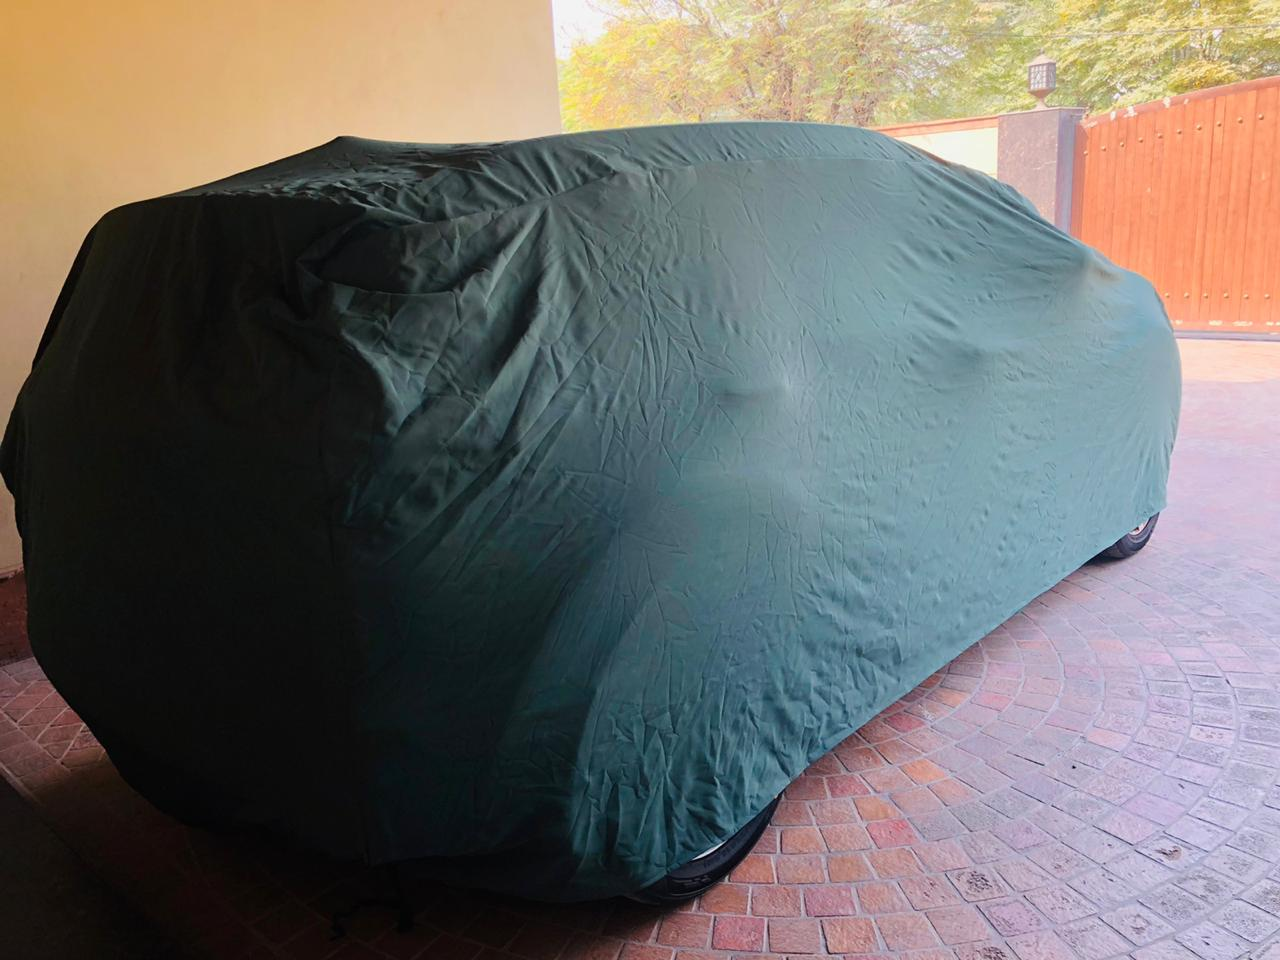 Toyota IST Model 2007-2017 Parachute Car Top Cover